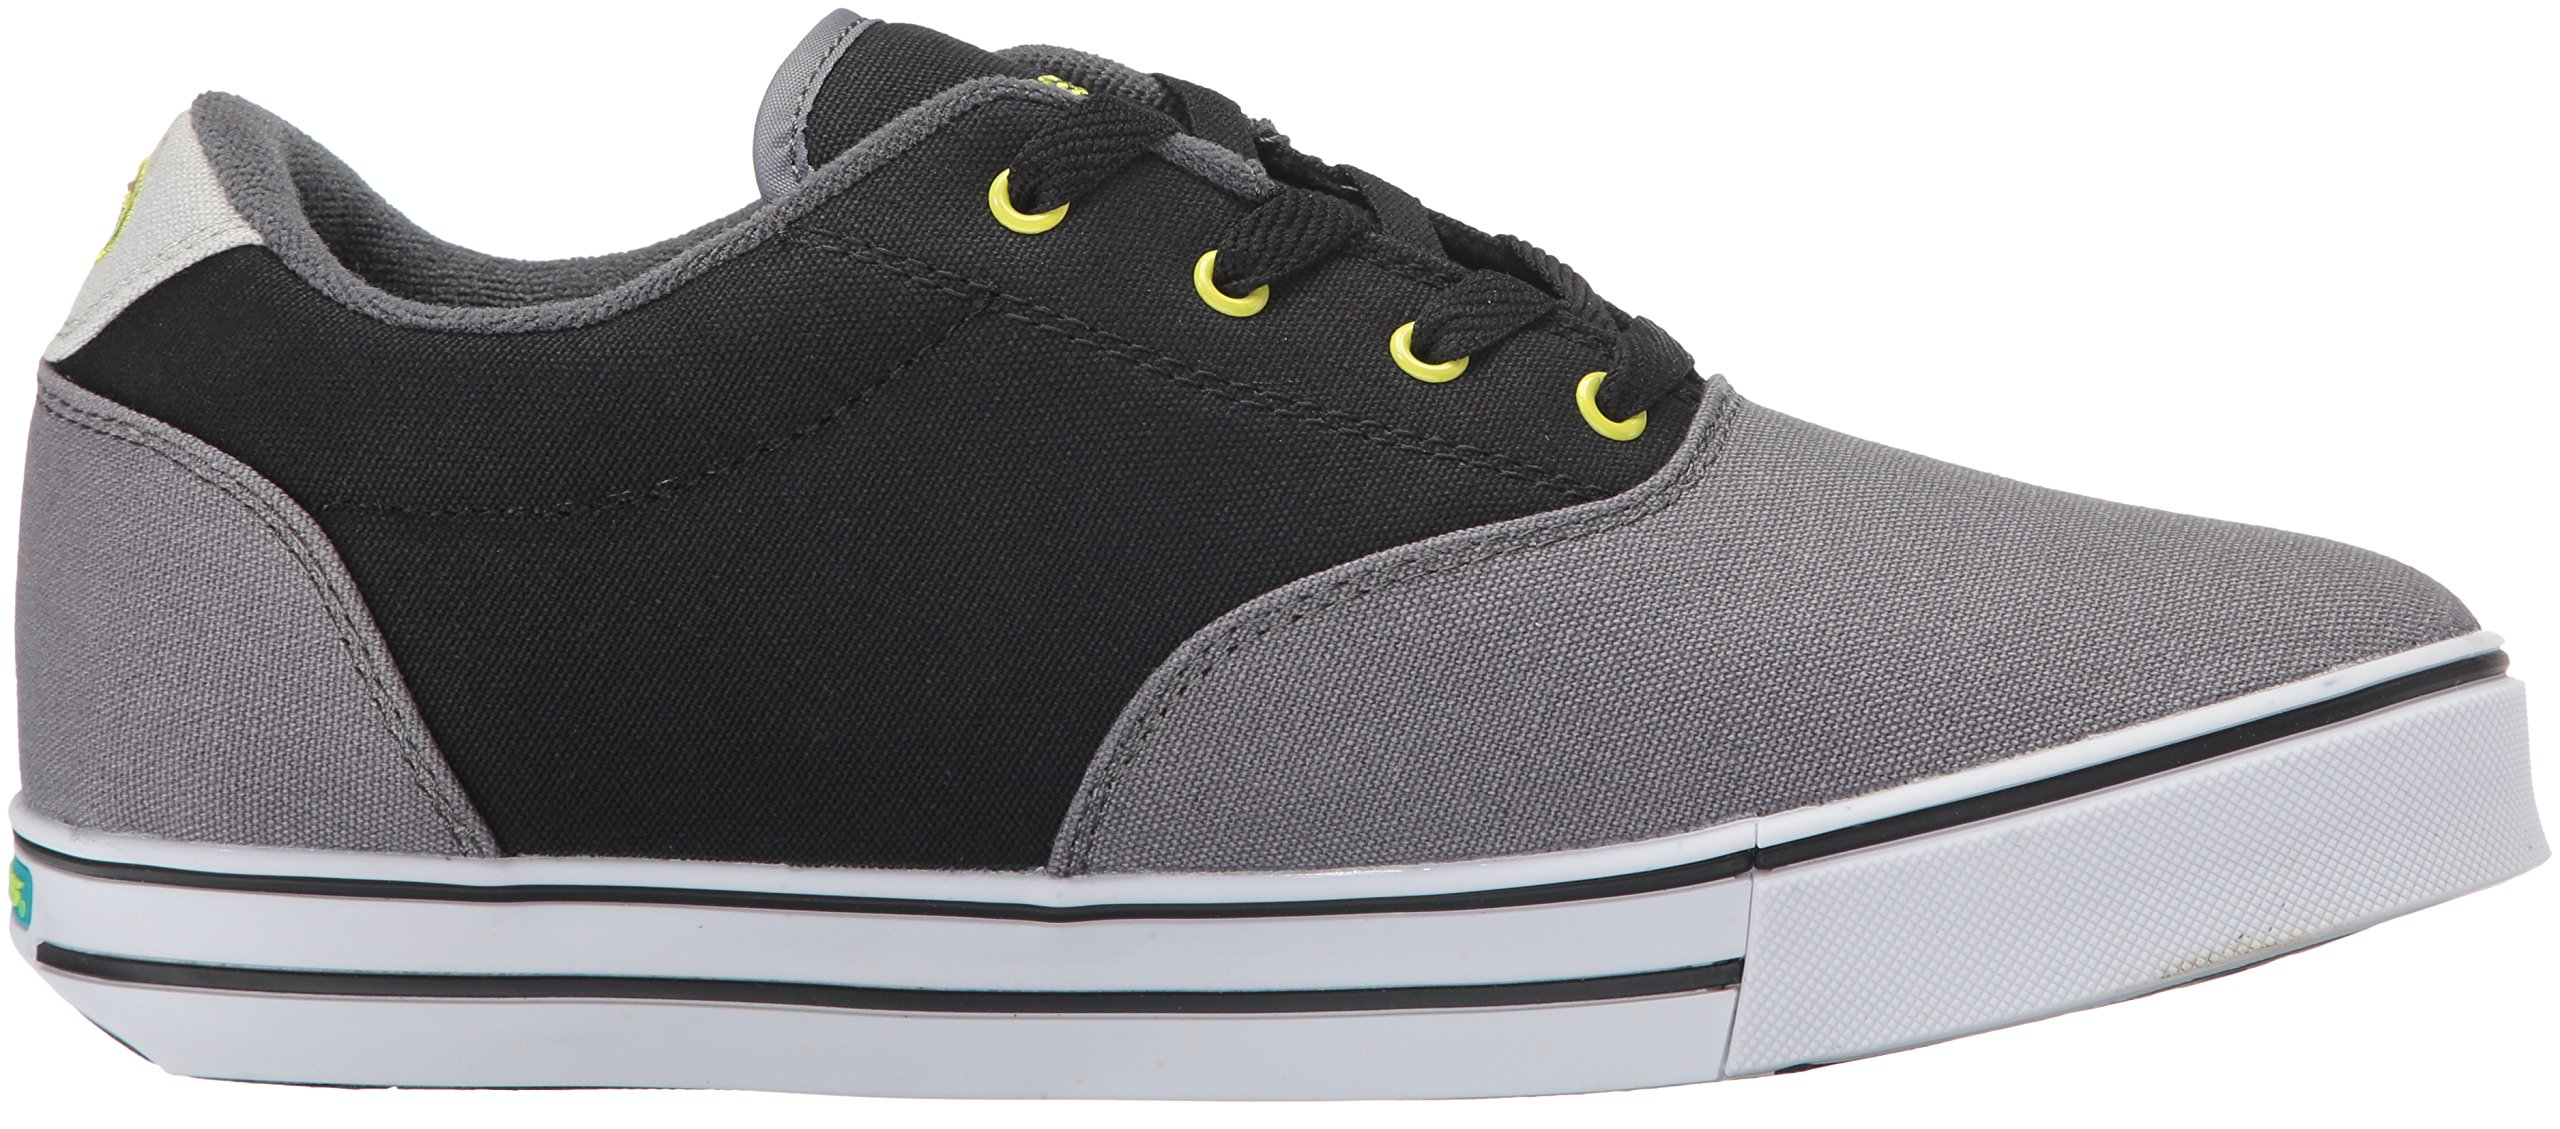 Heelys Men's Launch Fashion Sneaker Charcoal/Black/Lime 10 M US by Heelys (Image #7)